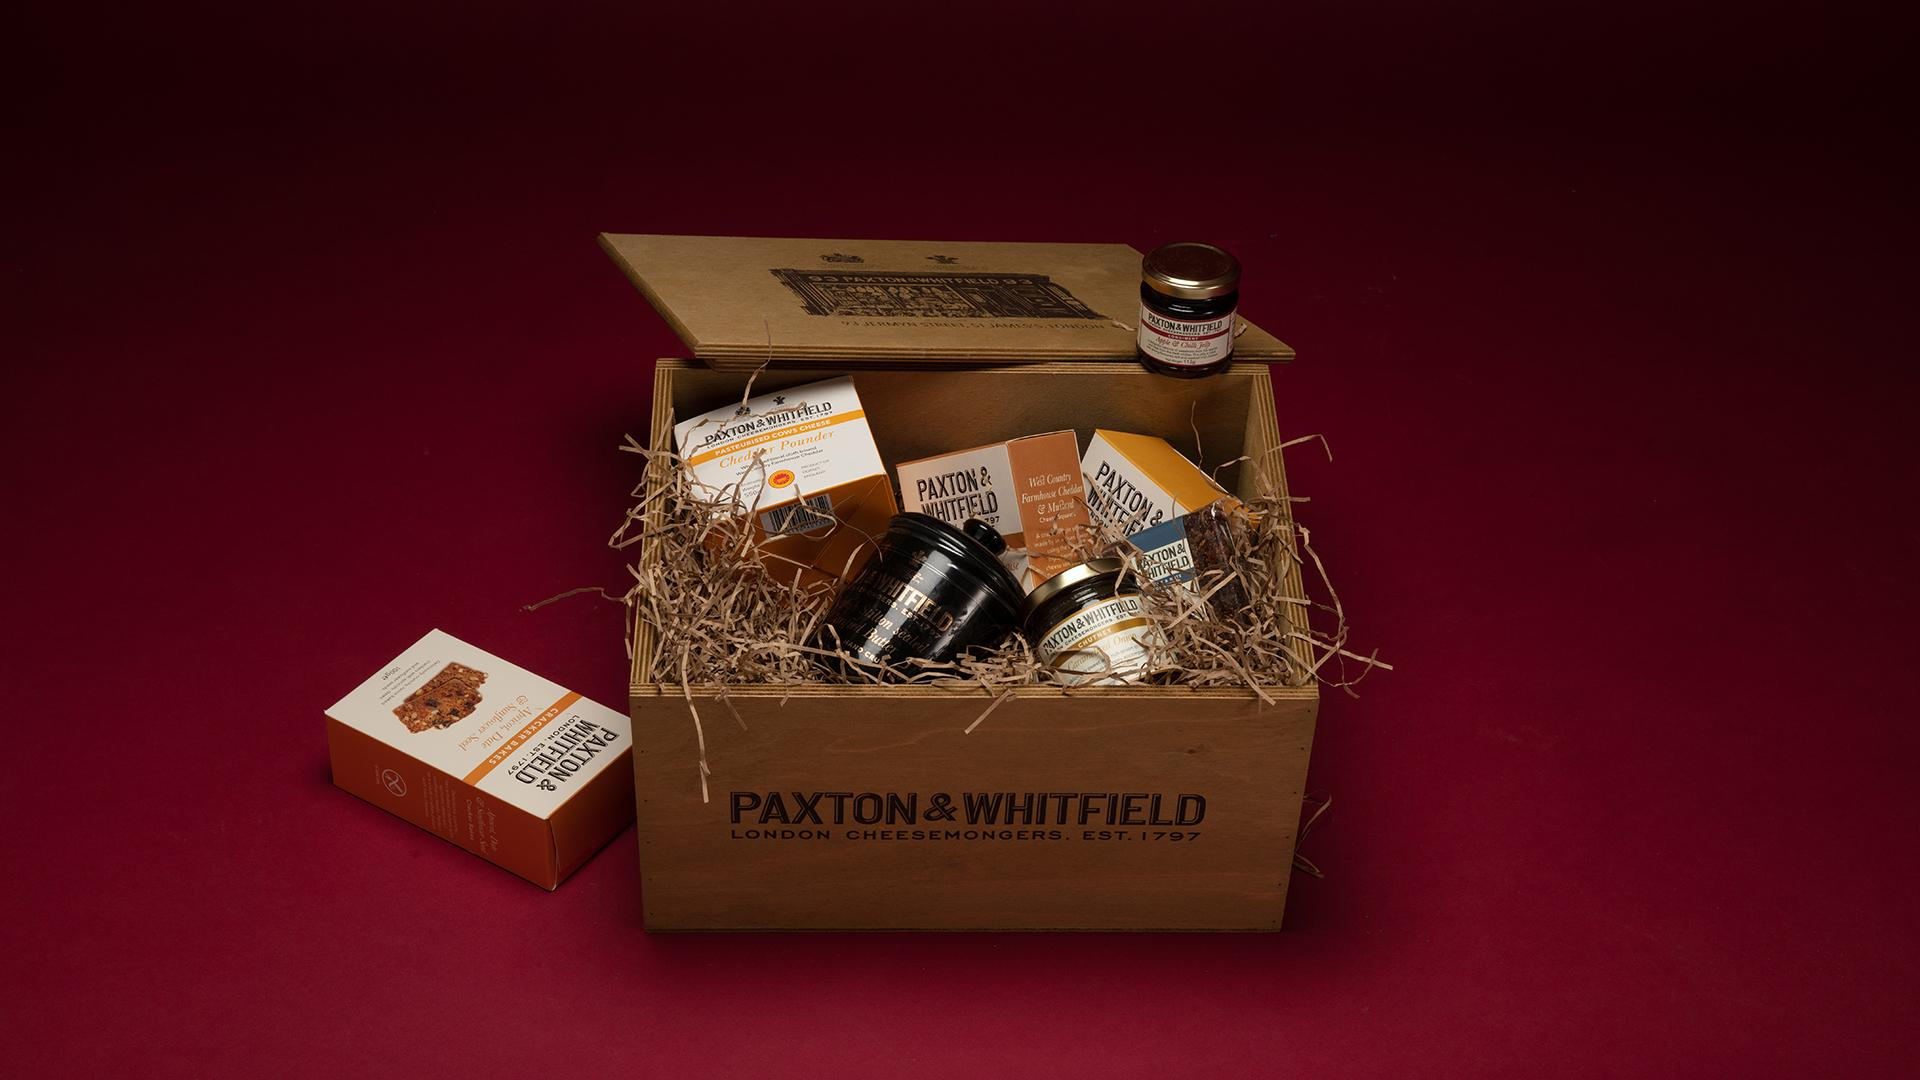 Christmas Hampers 2019: Paxton & Whitfield – The Piccadilly Hamper, £100